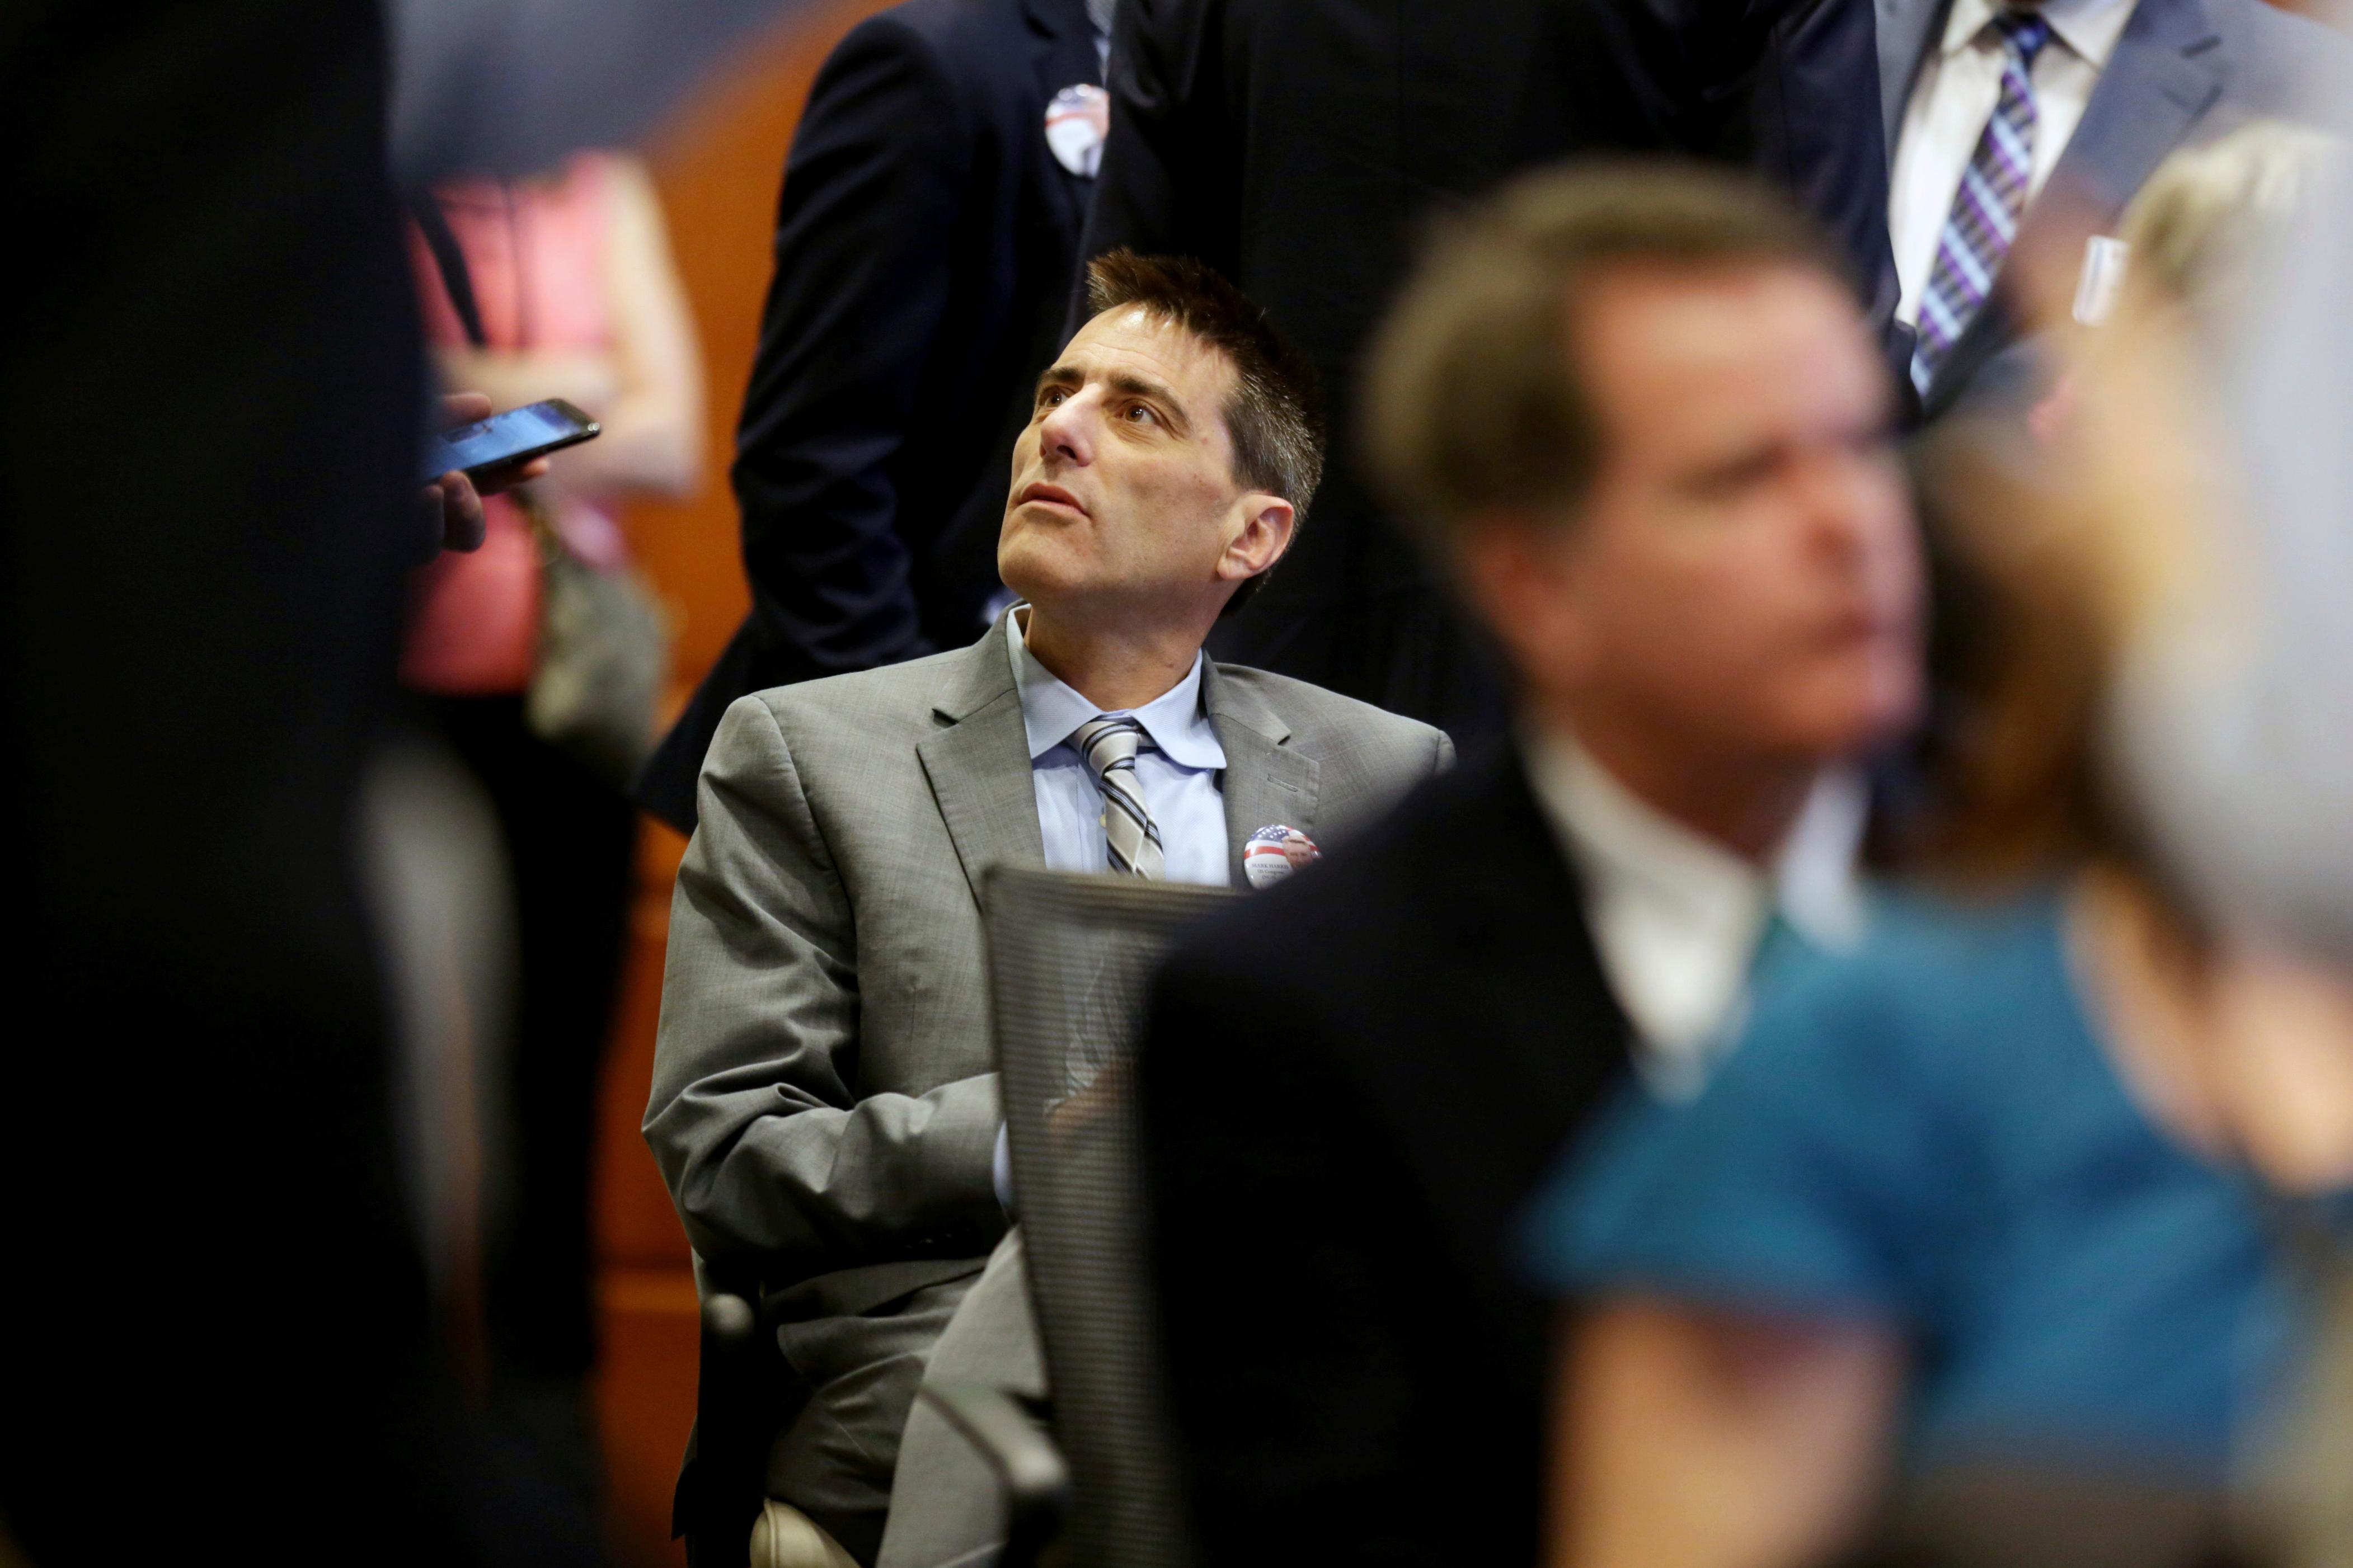 Executive director of the North Carolina Republican party Dallas Woodhouse is seated in the crowd during the public evidentiary hearing on the 9th Congressional District investigation Monday, Feb. 18, 2019, at the North Carolina State Bar in Raleigh, N.C. (Juli Leonard/The News & Observer via AP, Pool)